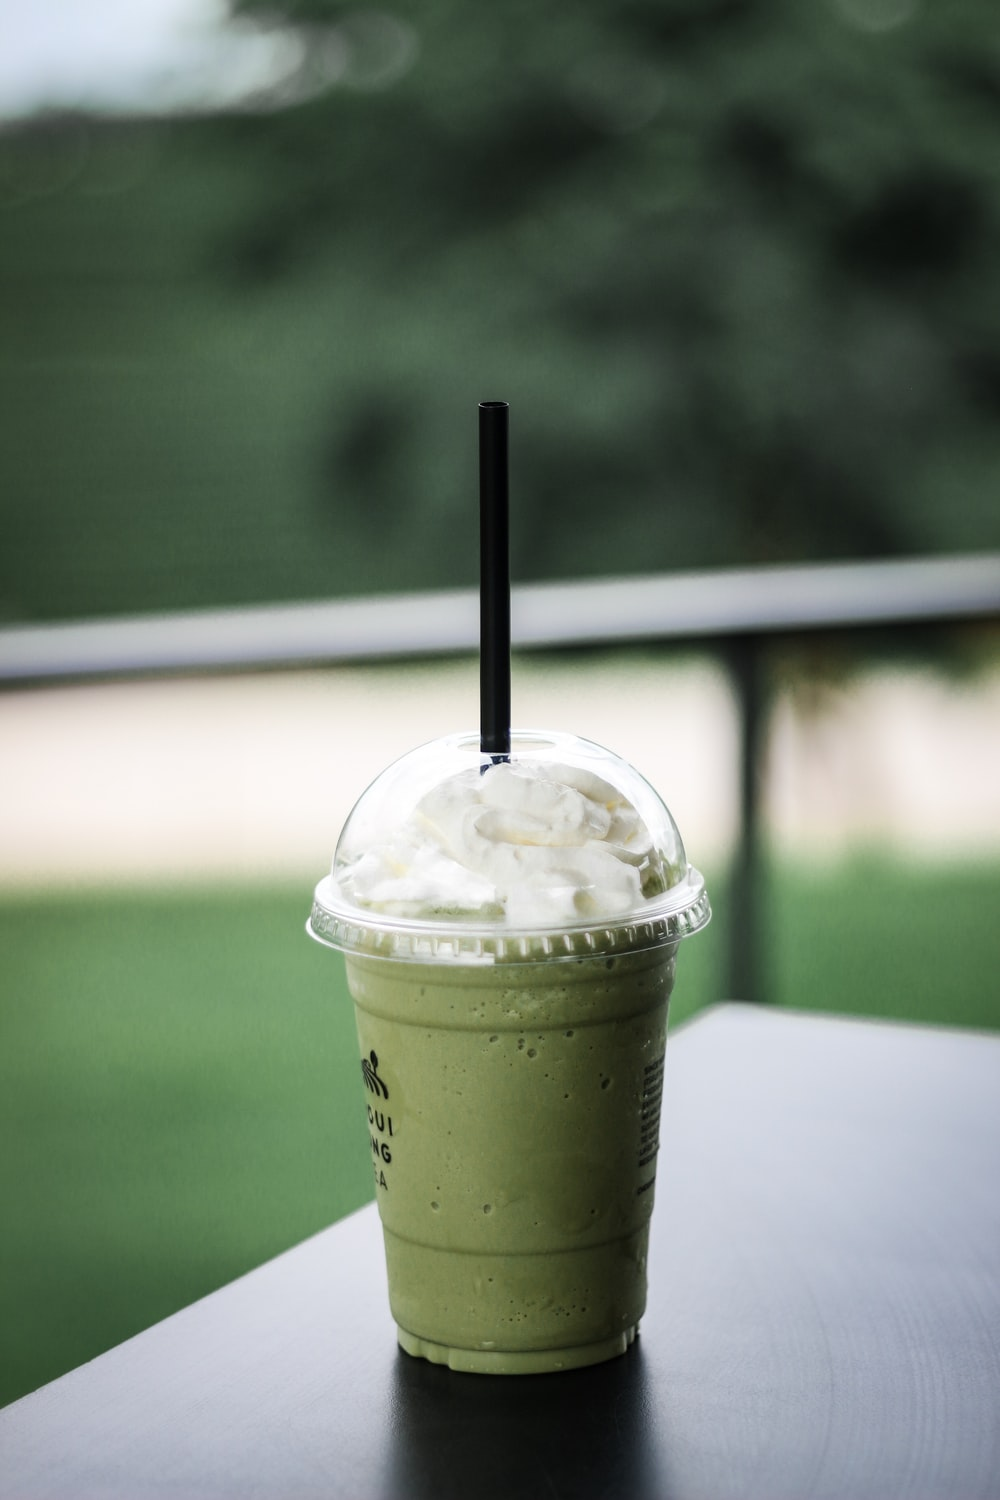 green disposable cup on black surface